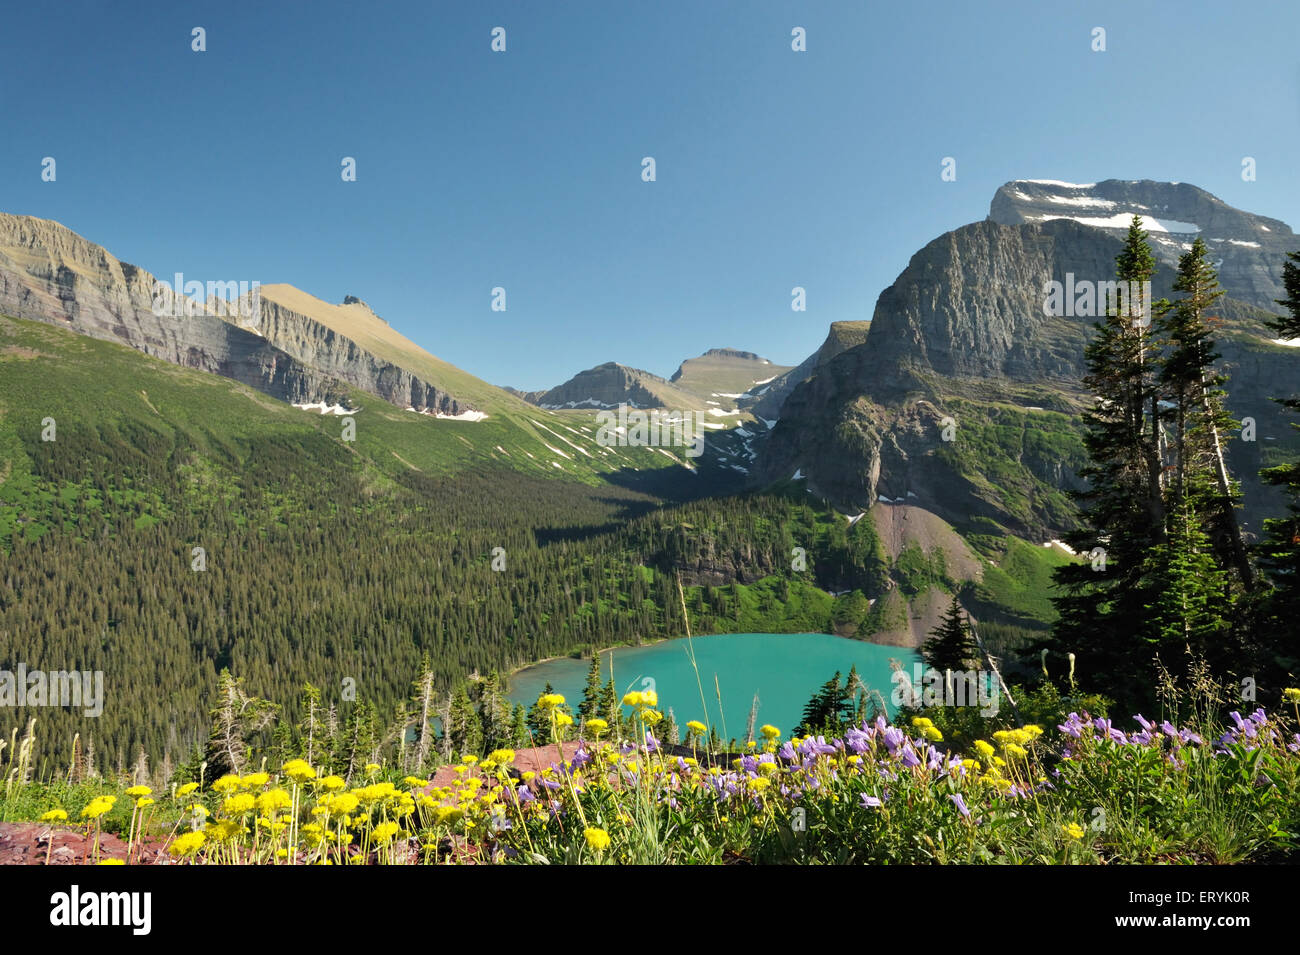 Mountains glaciers ; Glacier national park ; Montana ; USA United States of America - Stock Image